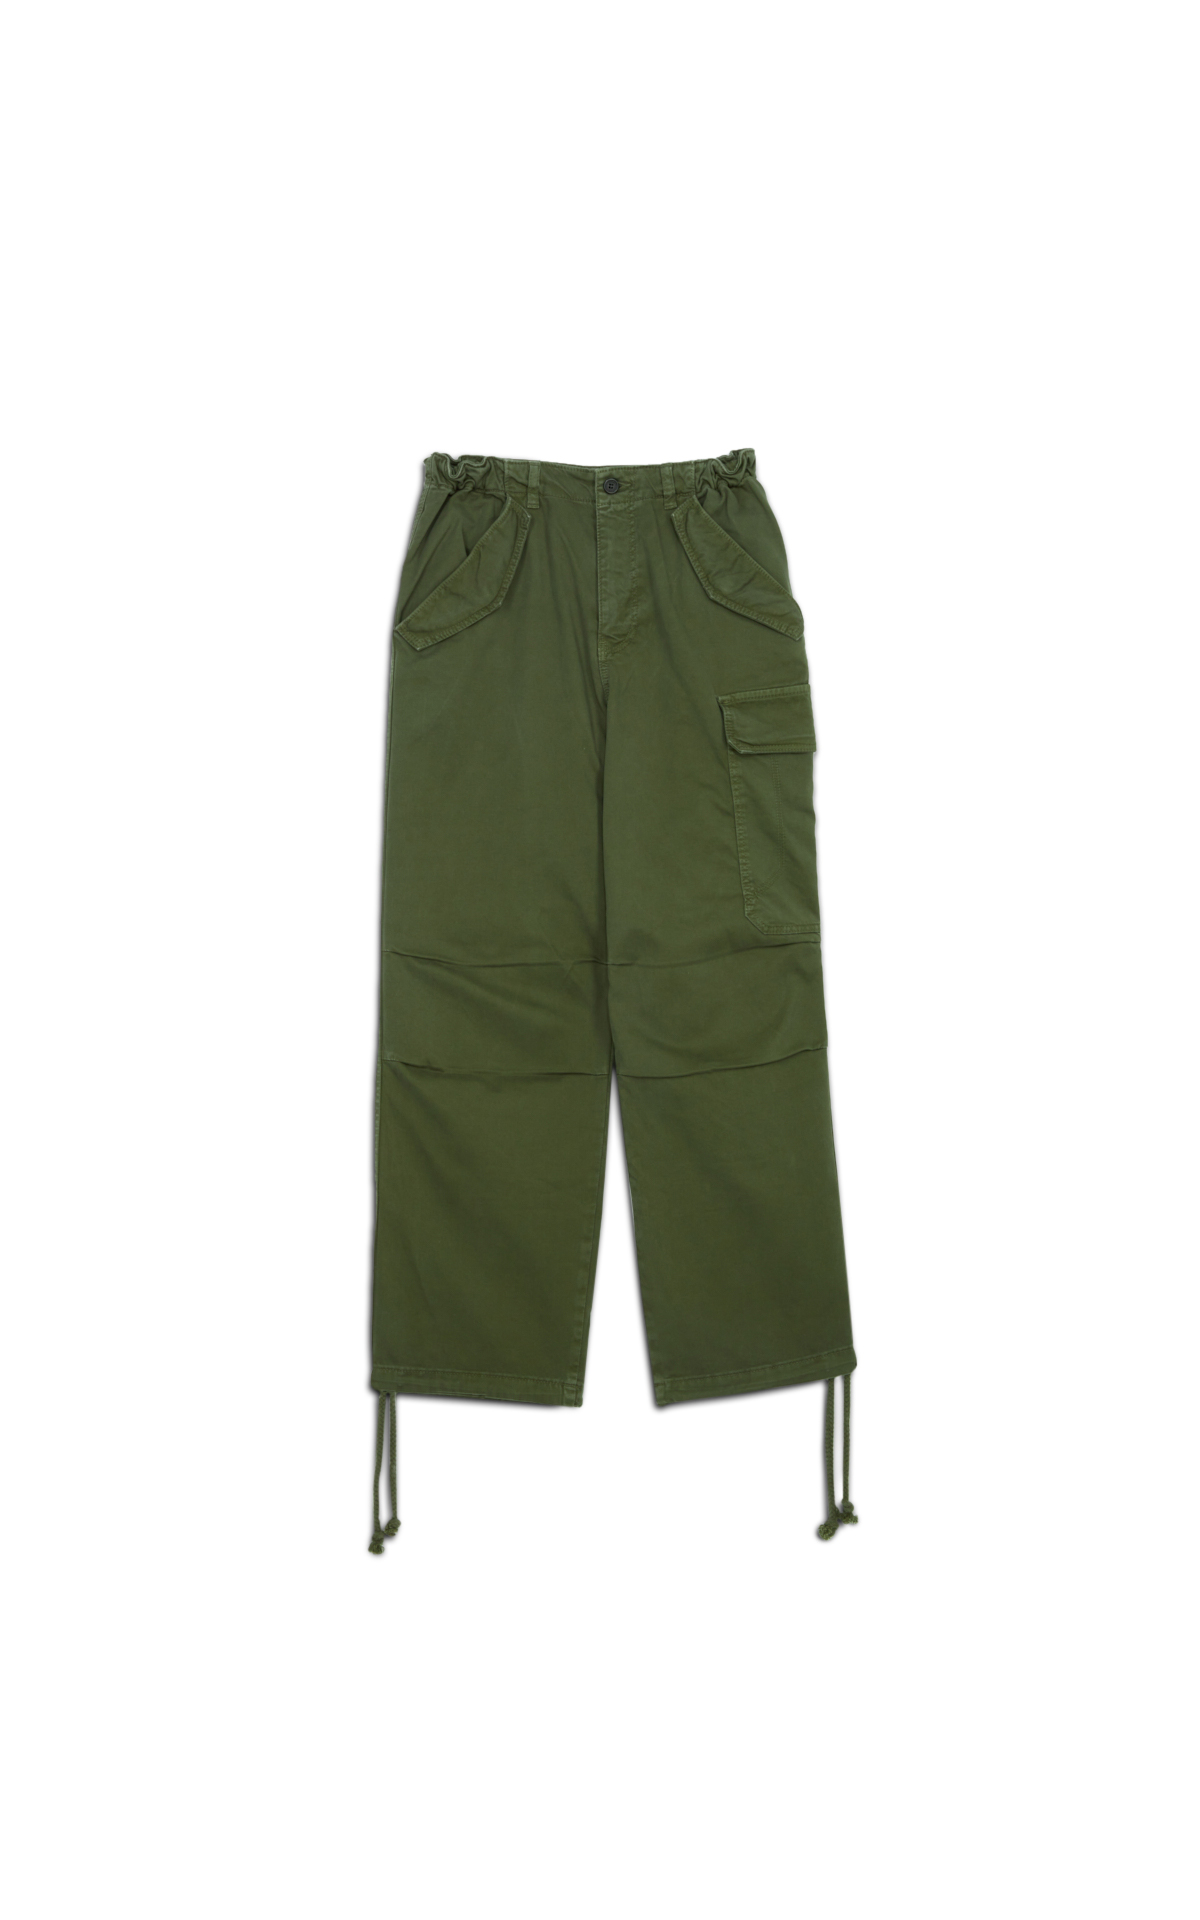 Ba&sh Pantalon Maxi Kaki la vallée village